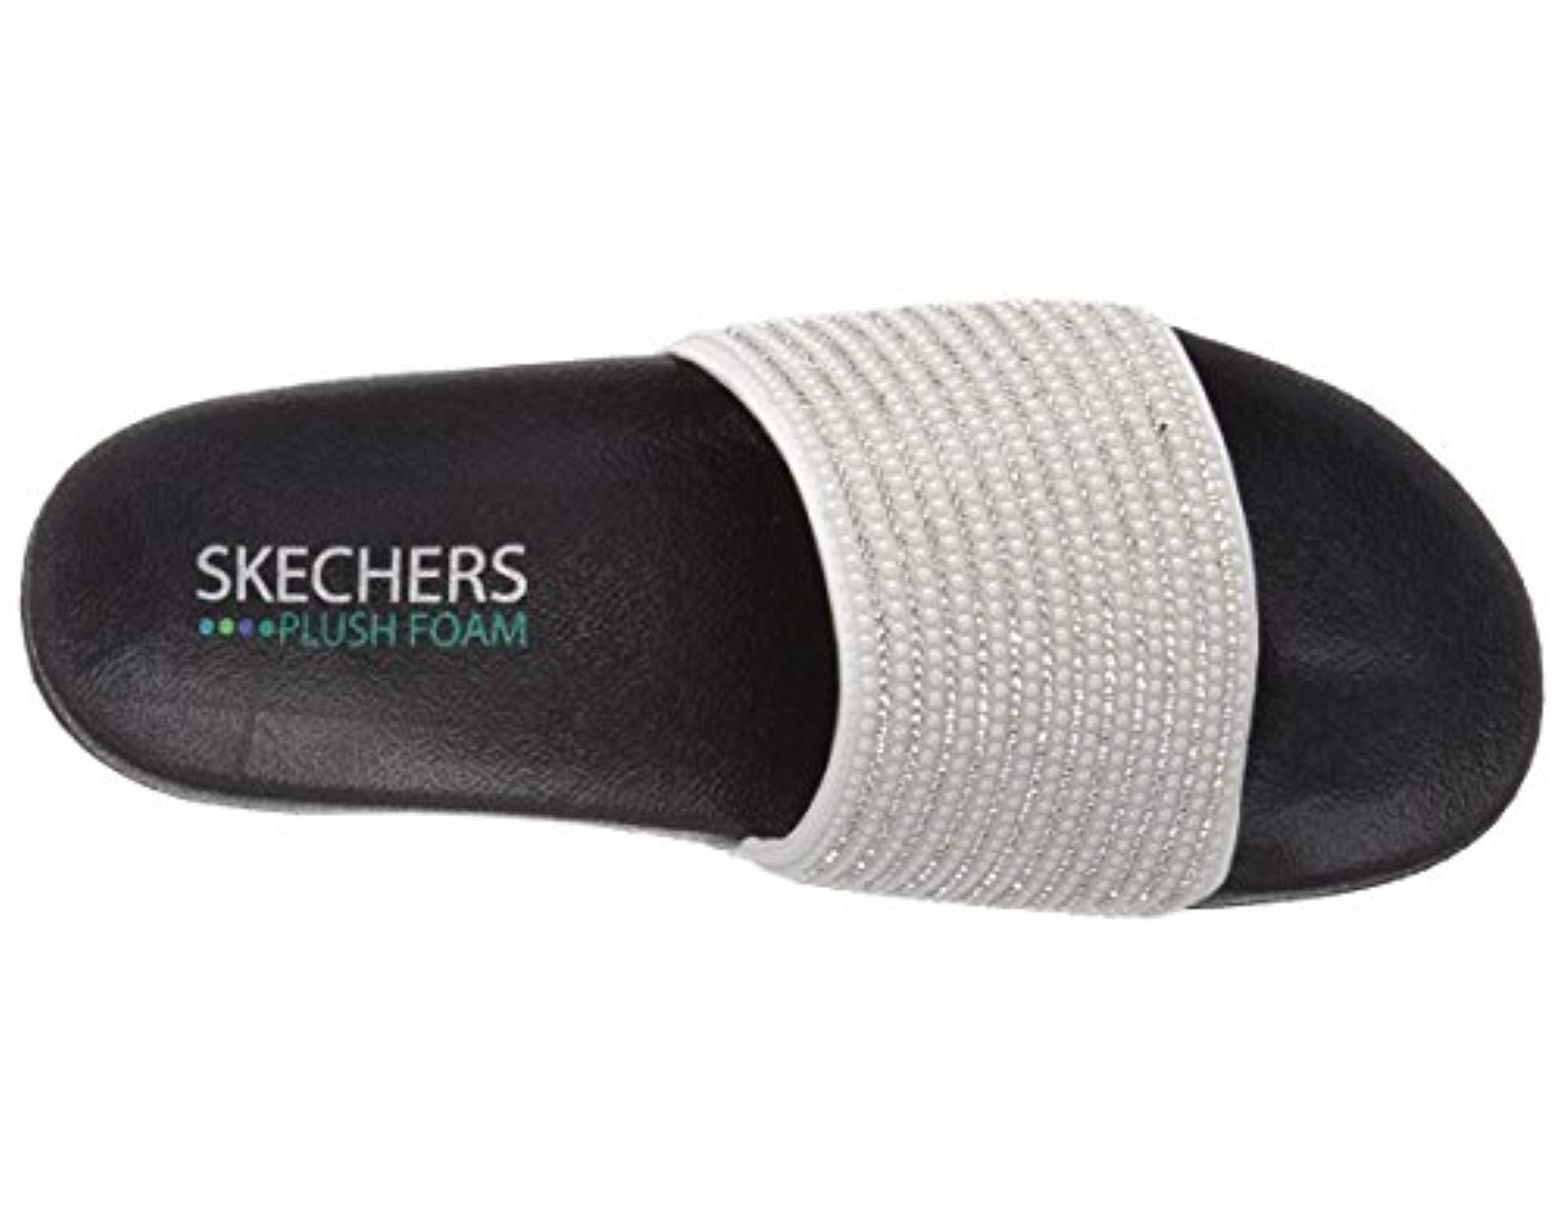 8a14d4519b96 Lyst - Skechers Pop Ups-halo Power-rhinestone And Pearl Shower Slide Sandal  in Metallic - Save 8%